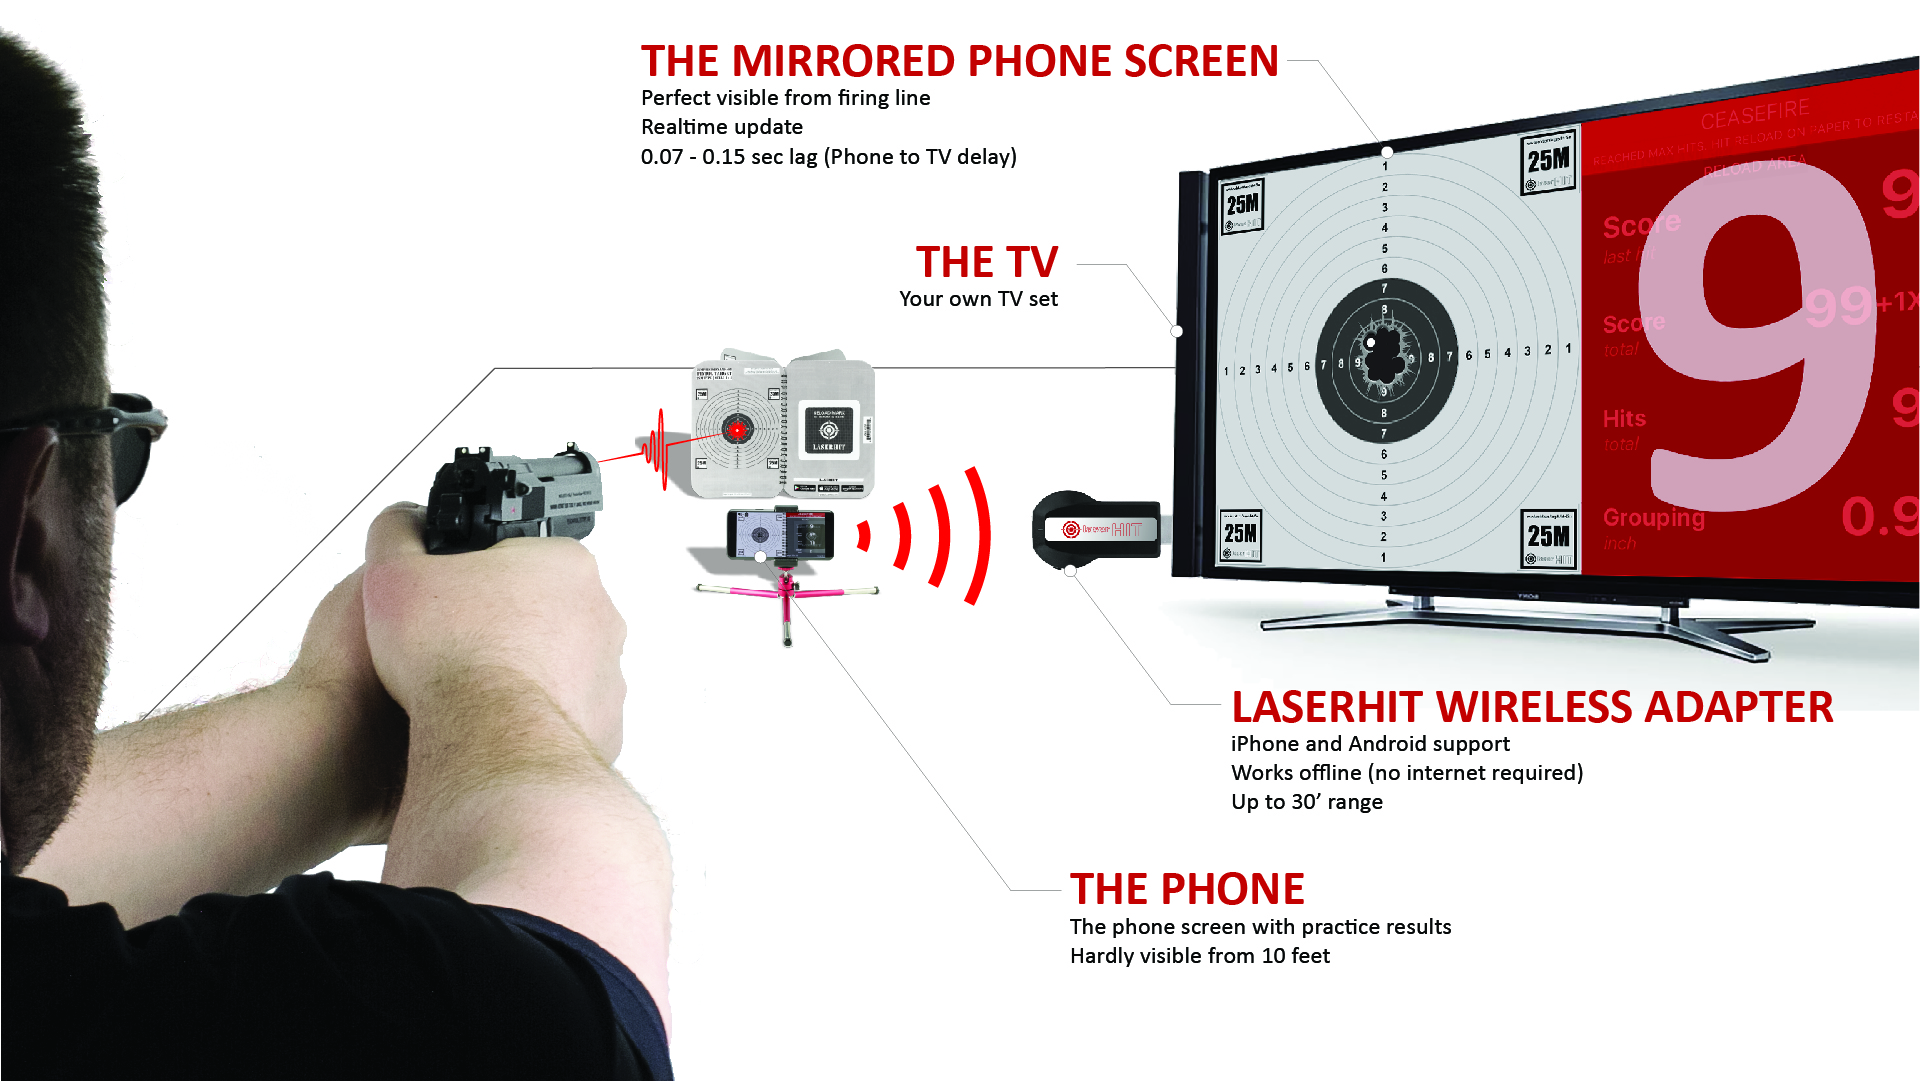 The LaserHIT Wireless Adapter fits perfectly into the accessories slot.